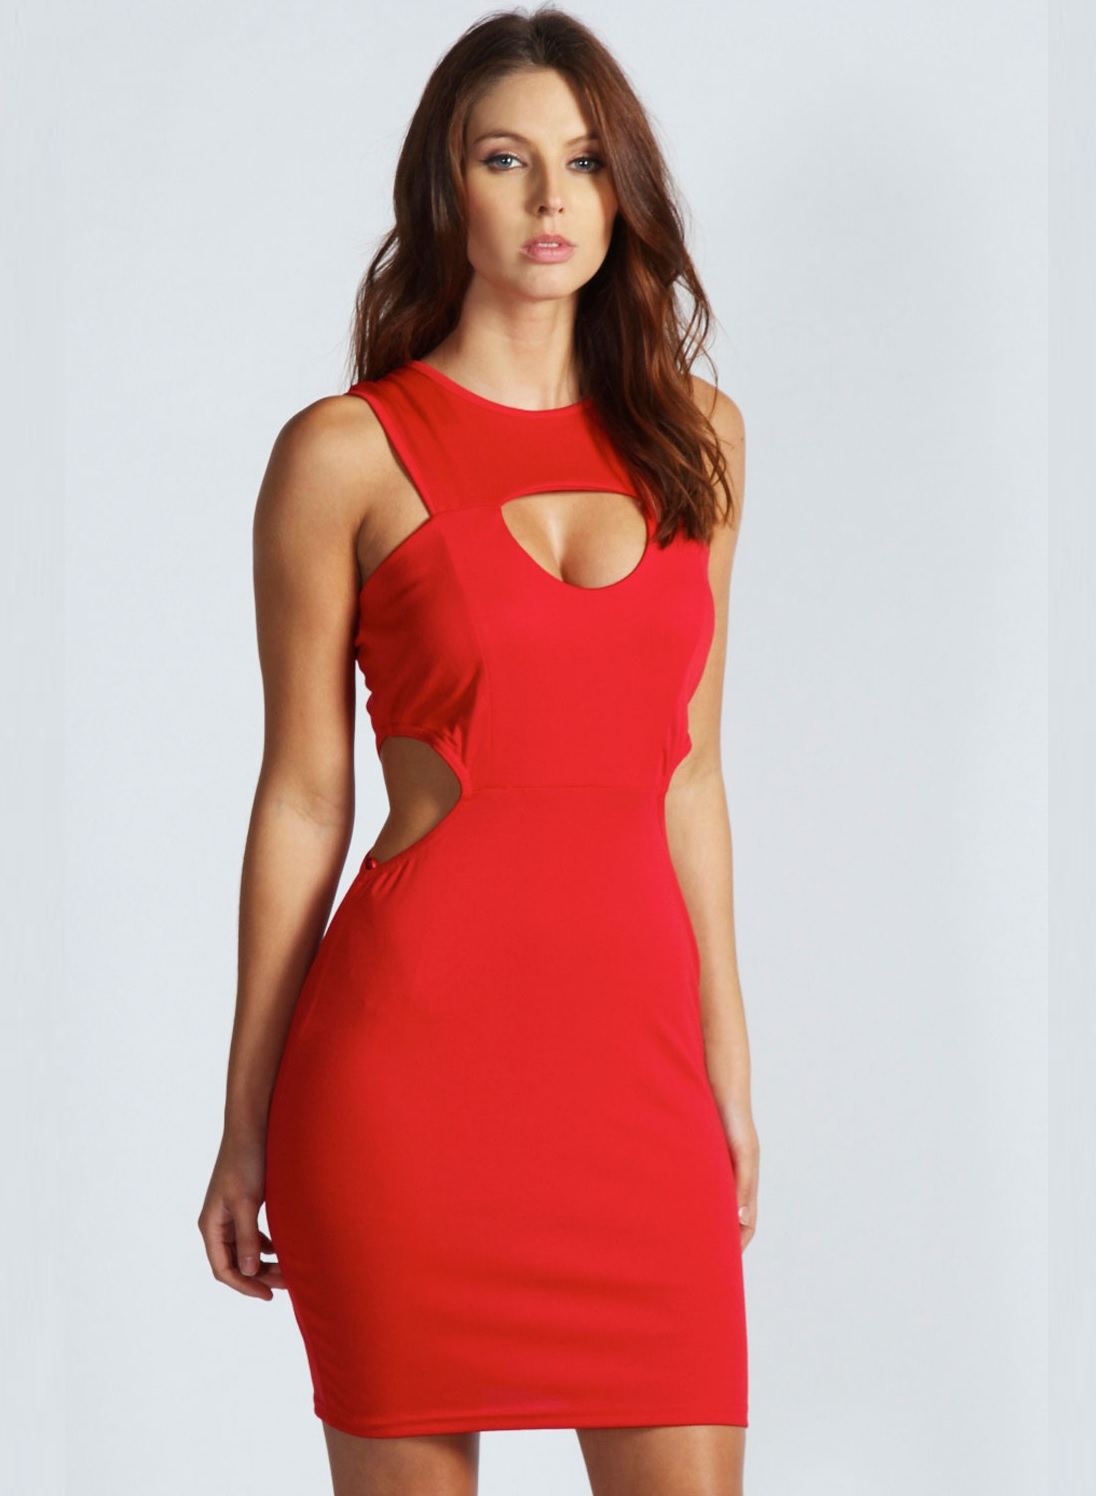 Red Cutout Dress Outfit Ideas For Valentines Day